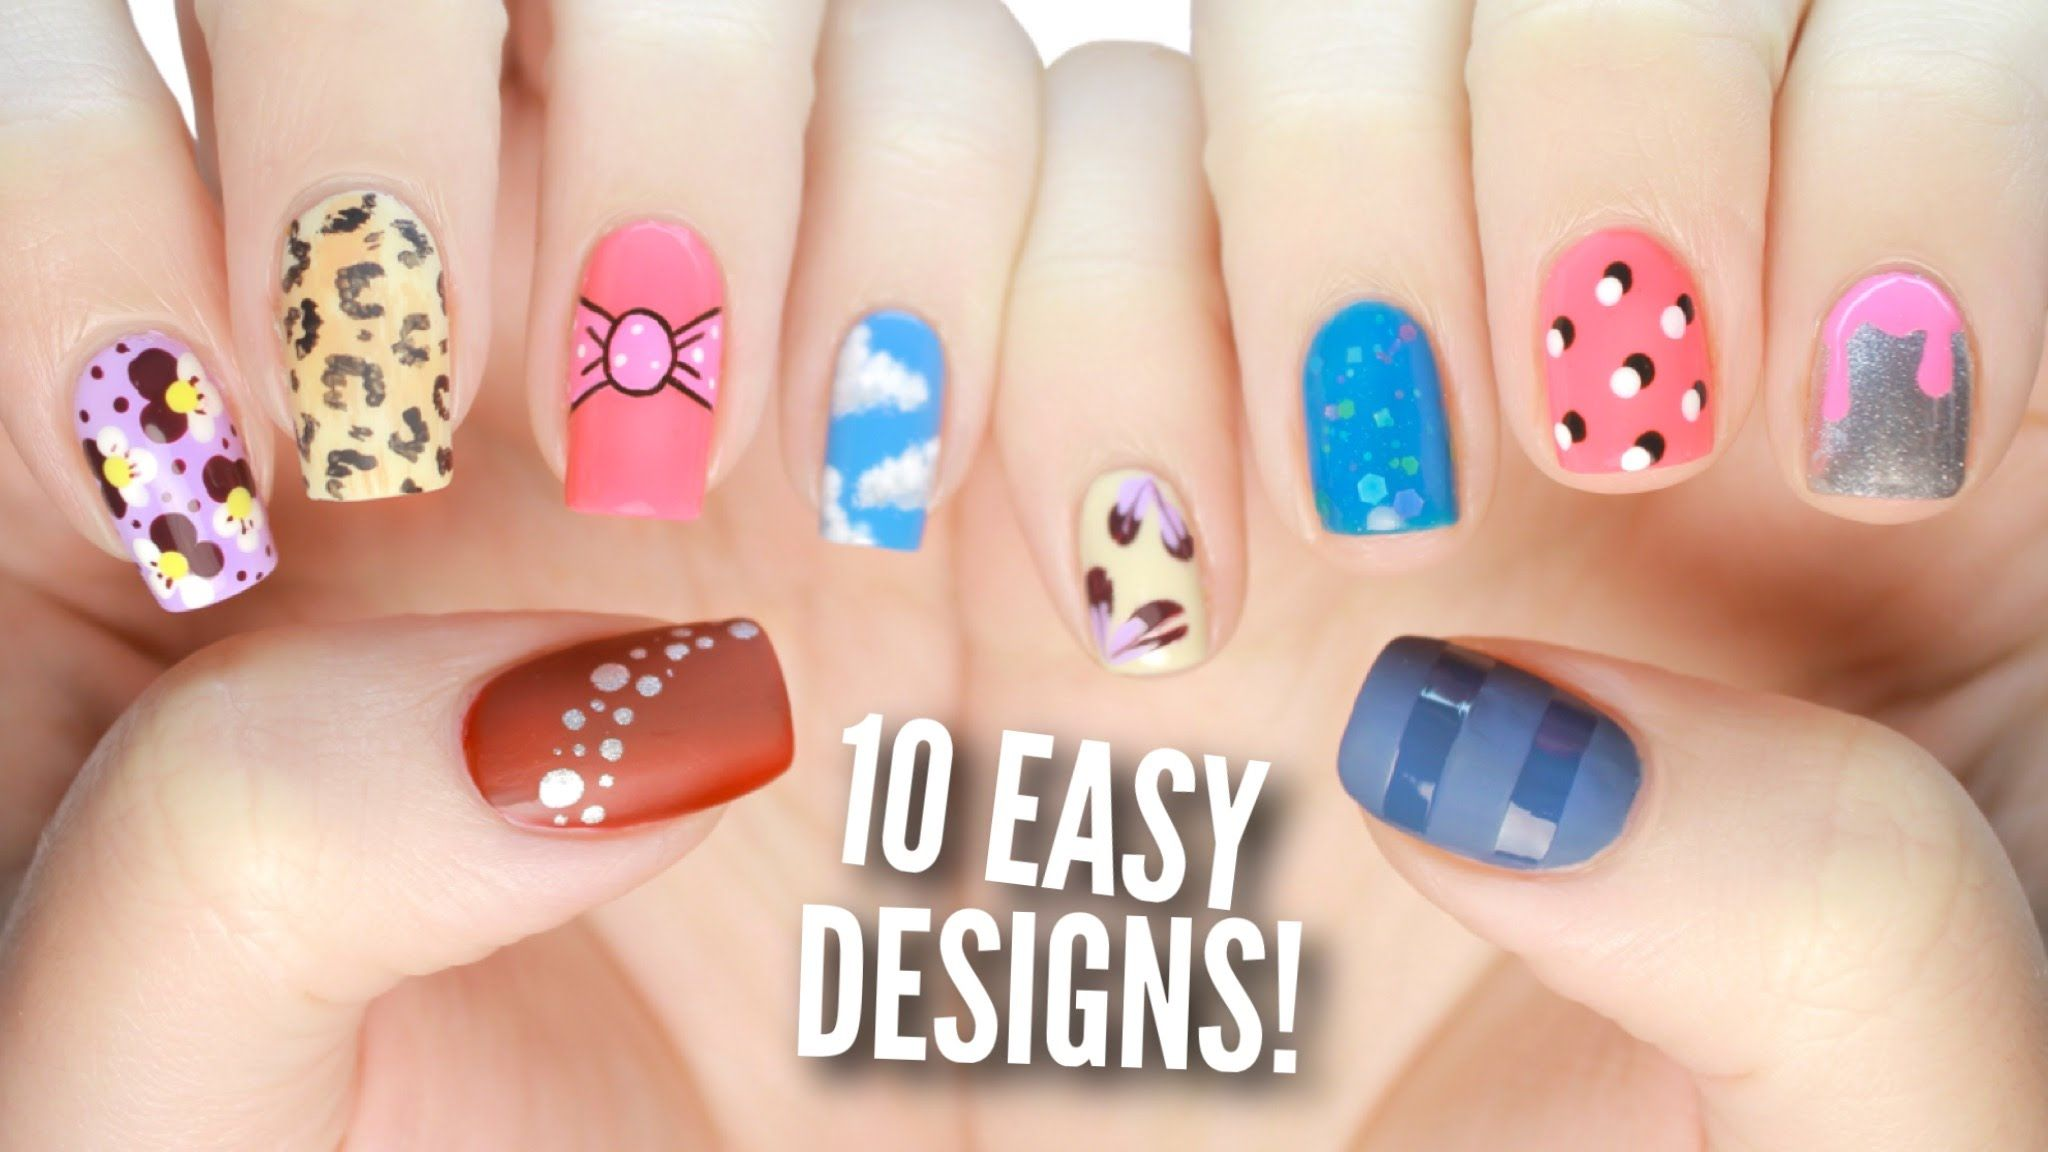 10 Easy Nail Art Designs For Beginners The Ultimate Guide 3 Nail Art For Beginners Easy Nail Polish Designs Simple Nails